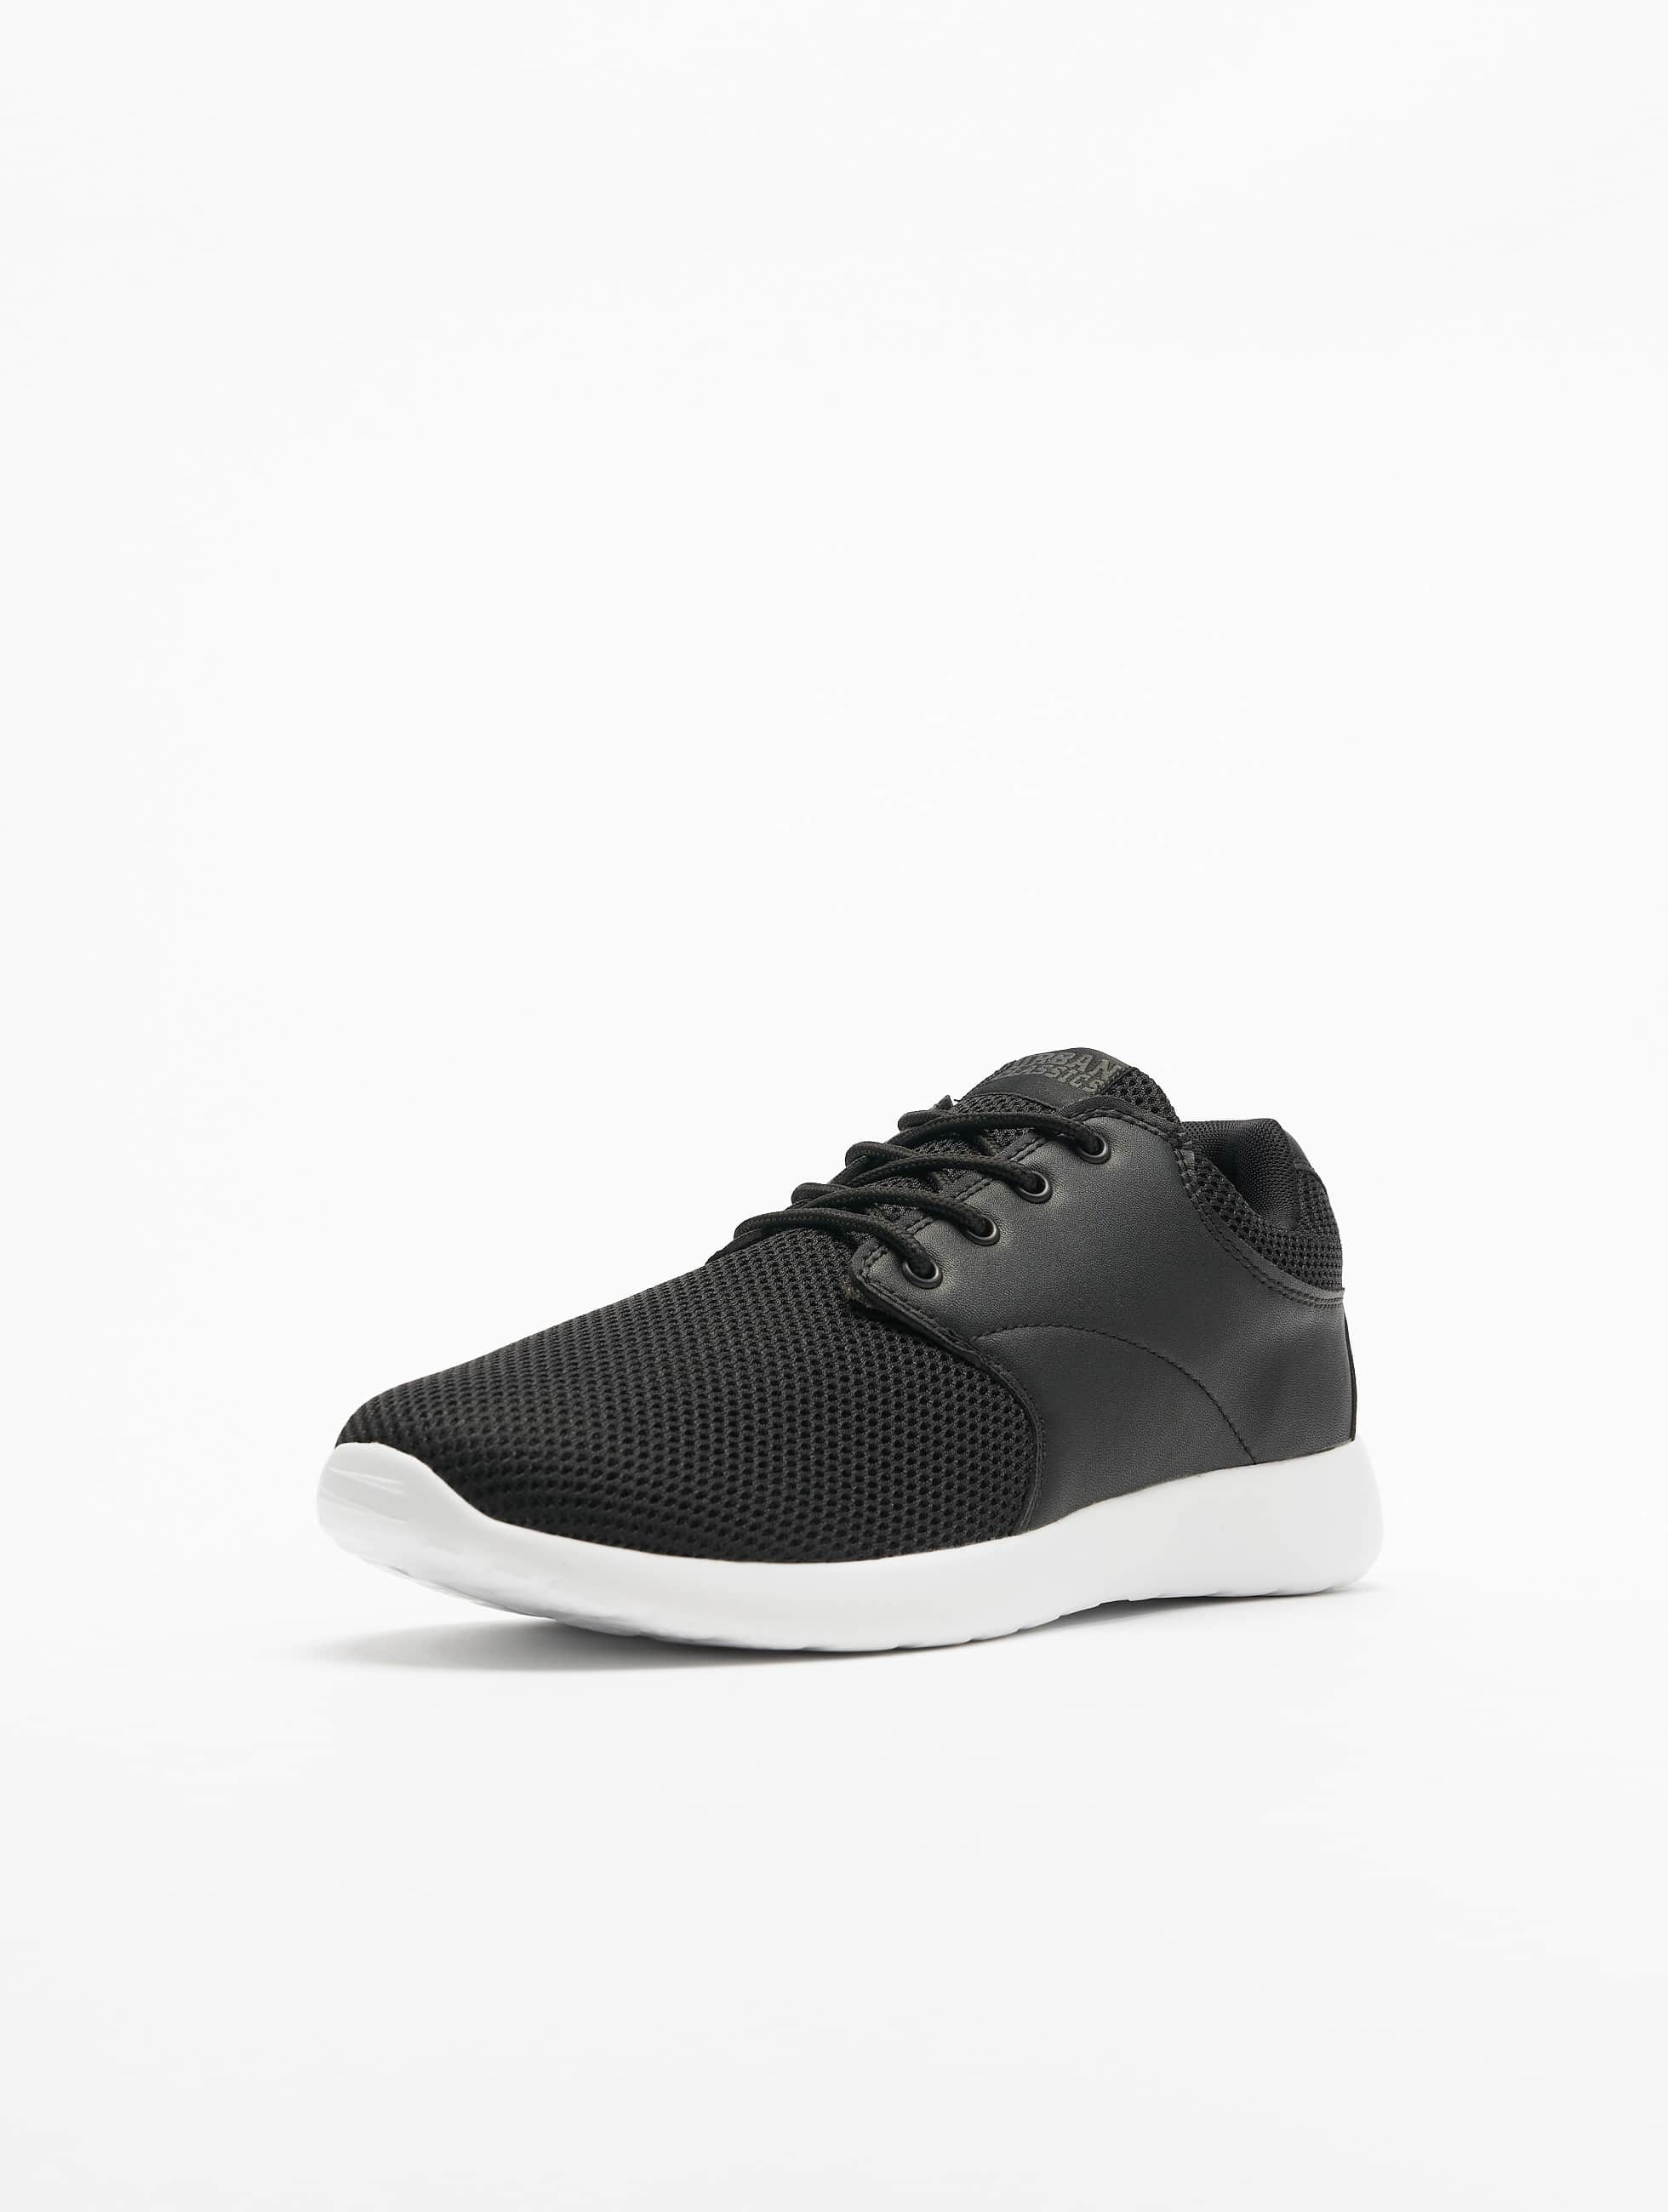 Urban Classics Сникеры Light Runner черный